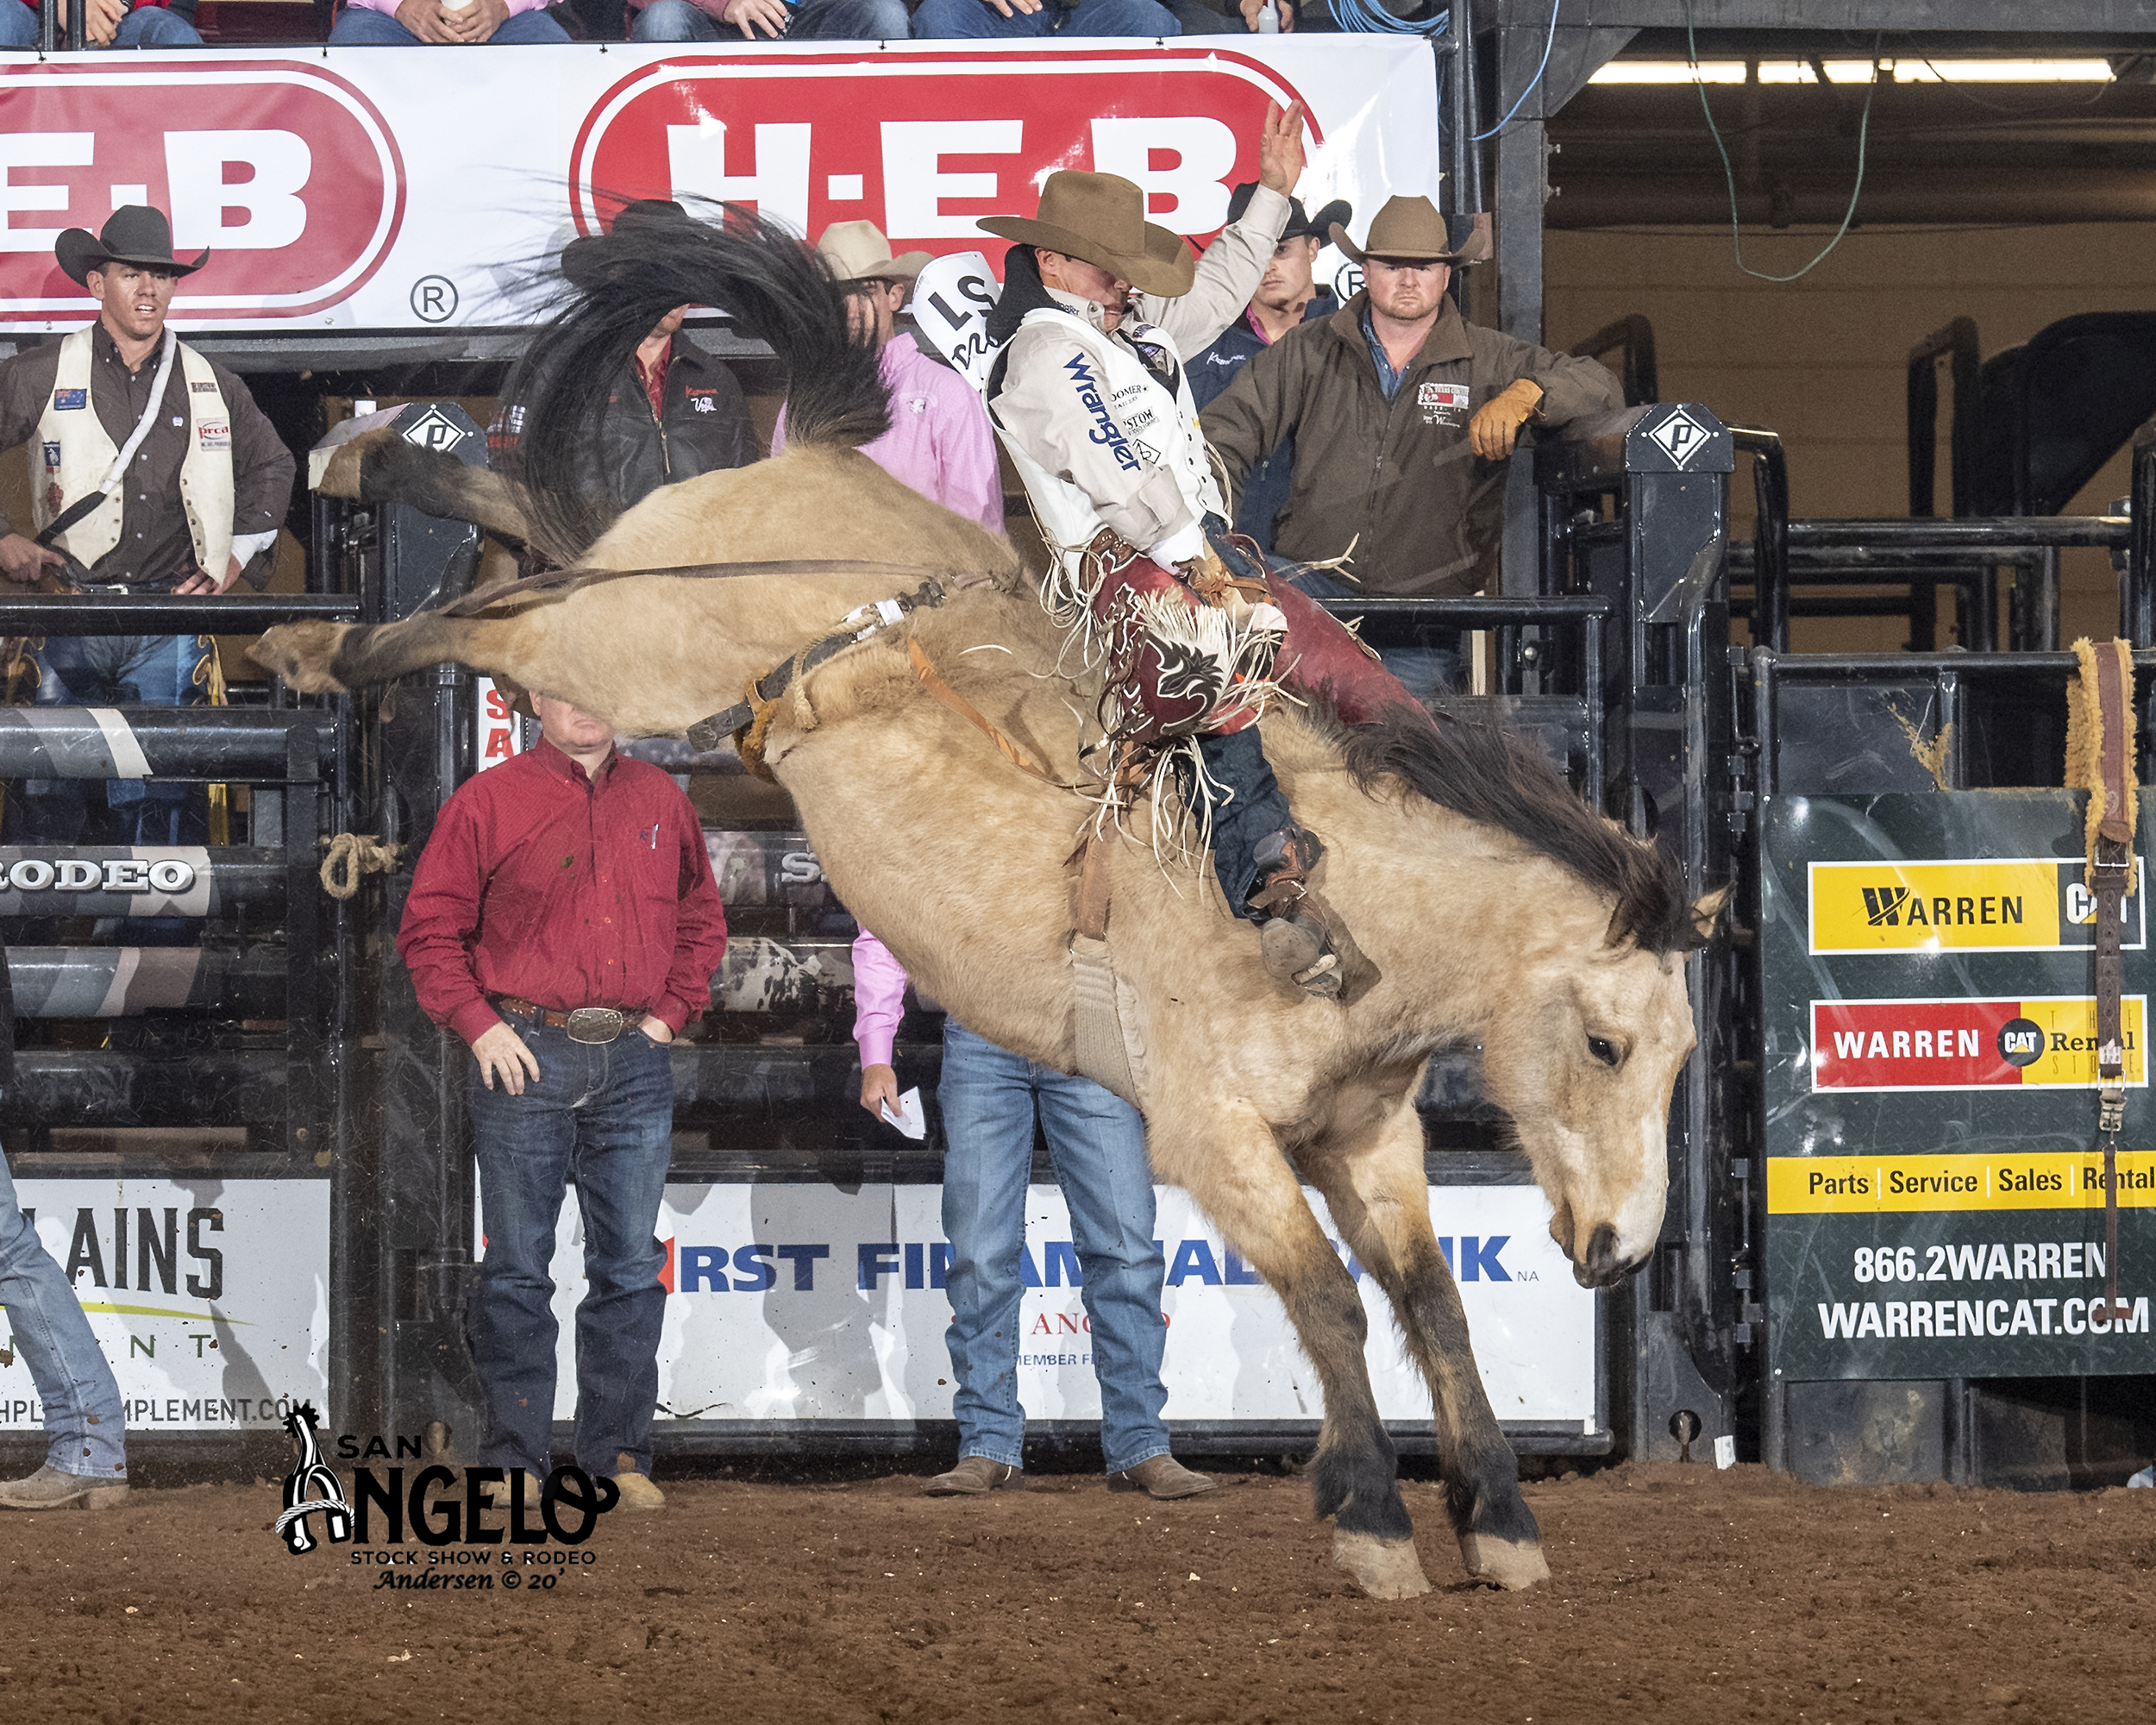 Reigning world champion bareback rider Clayton Biglow rides Northcott Macza's Time Machine for 84 points to catch a little first round money while qualifying for Friday's short round at the San Angelo Stock Show and Rodeo. (PHOTO BY RIC ANDERSEN